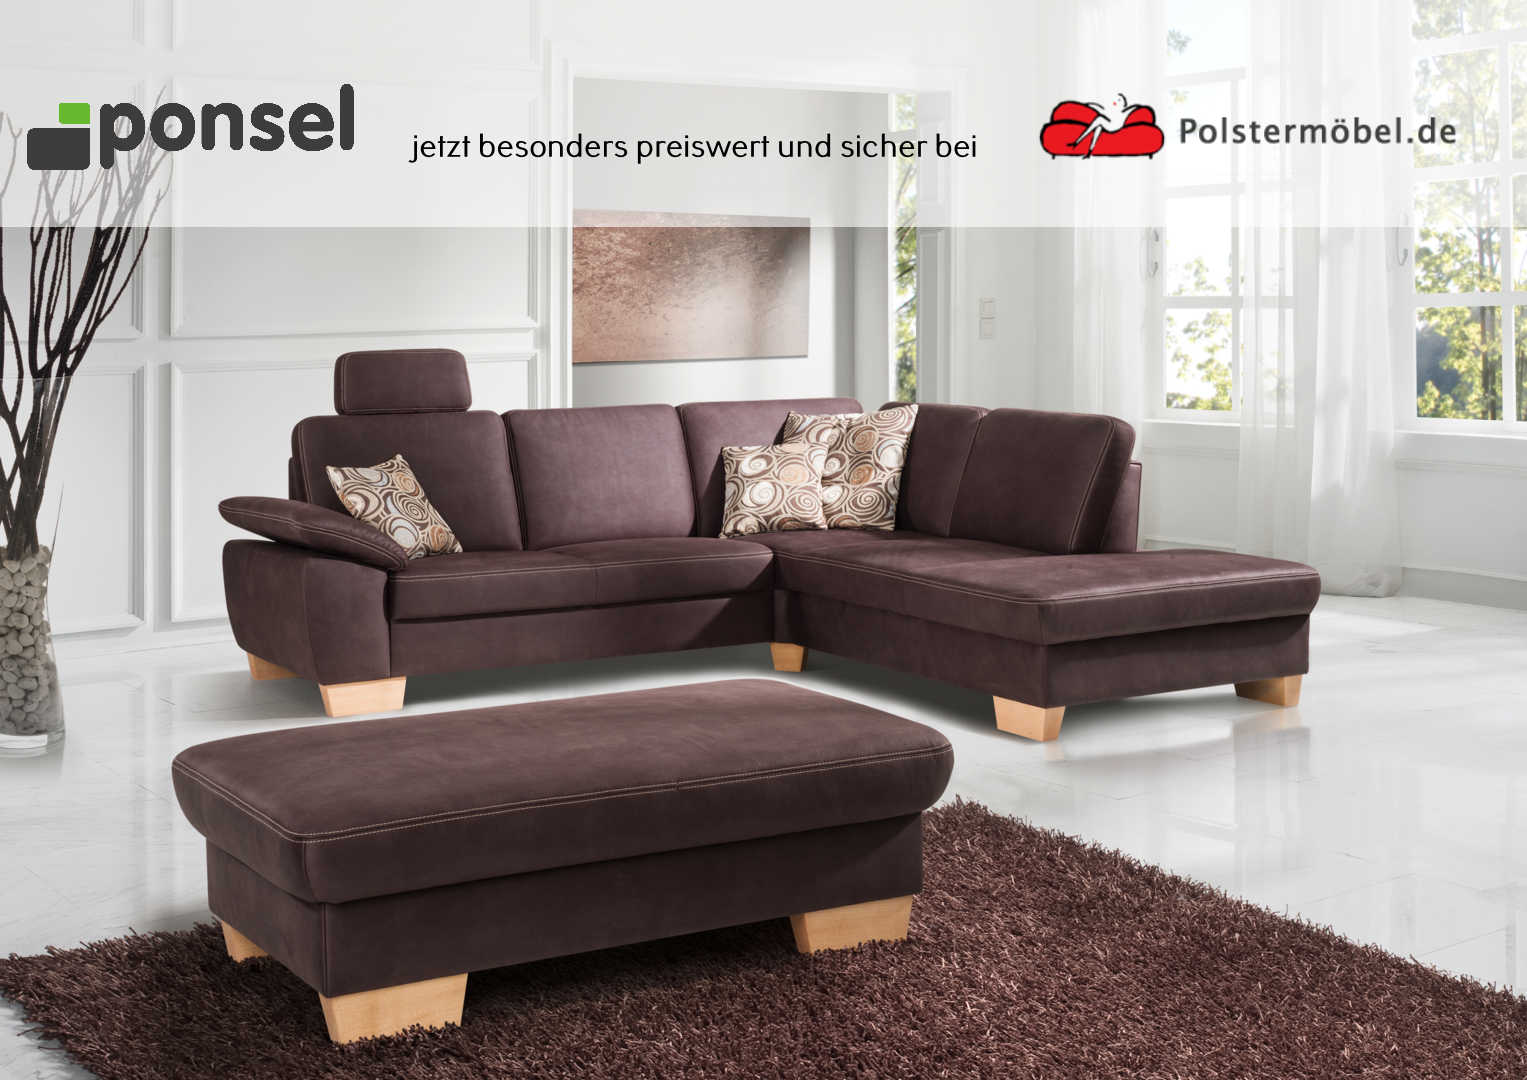 ponsel leder chalet l 838 durban leder polsterm. Black Bedroom Furniture Sets. Home Design Ideas